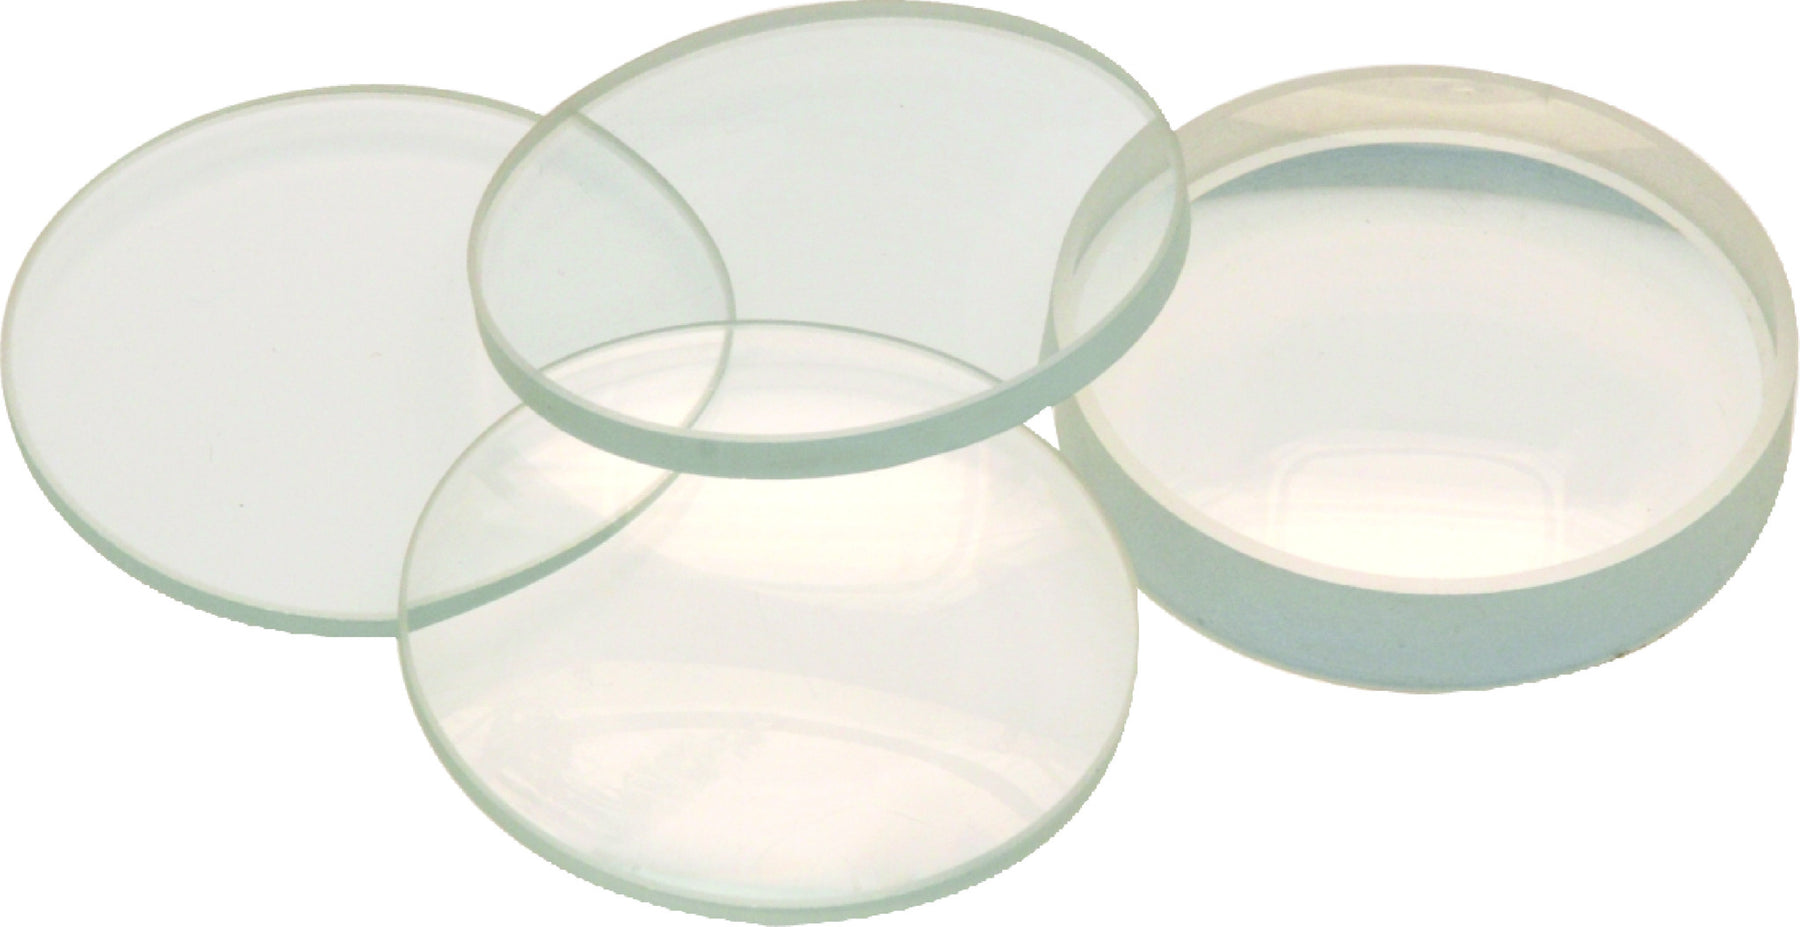 Glass Lenses - Double Convex & Concave, Dia - 40 mm, F.L. - 200 mm